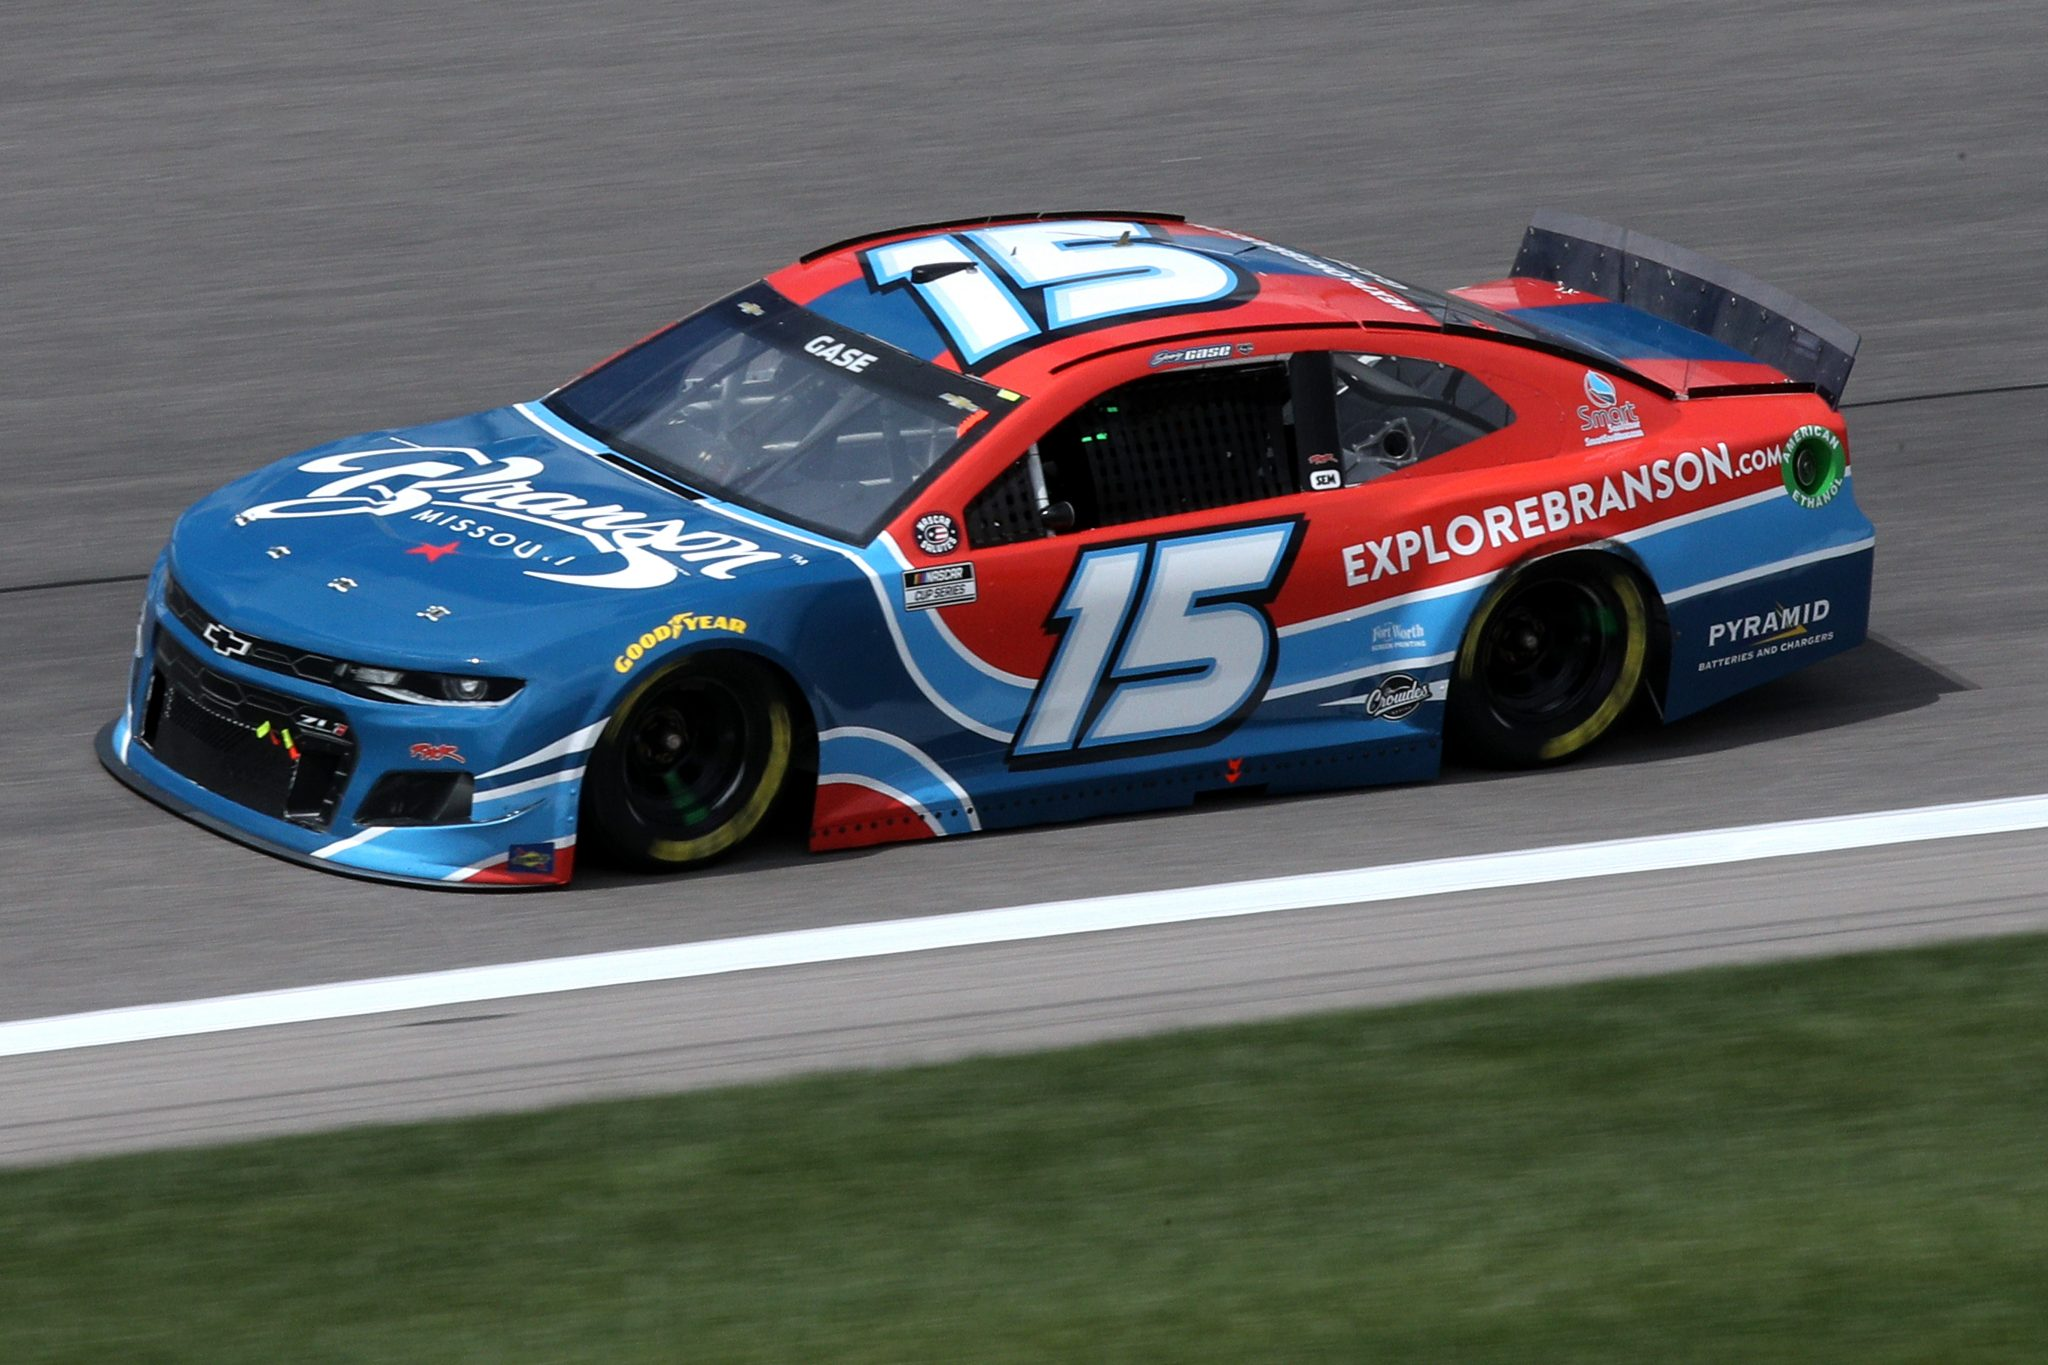 KANSAS CITY, KANSAS - MAY 02: Joey Gase, driver of the #15 Explore Branson Chevrolet, drives during the NASCAR Cup Series Buschy McBusch Race 400 at Kansas Speedway on May 02, 2021 in Kansas City, Kansas. (Photo by Sean Gardner/Getty Images) | Getty Images